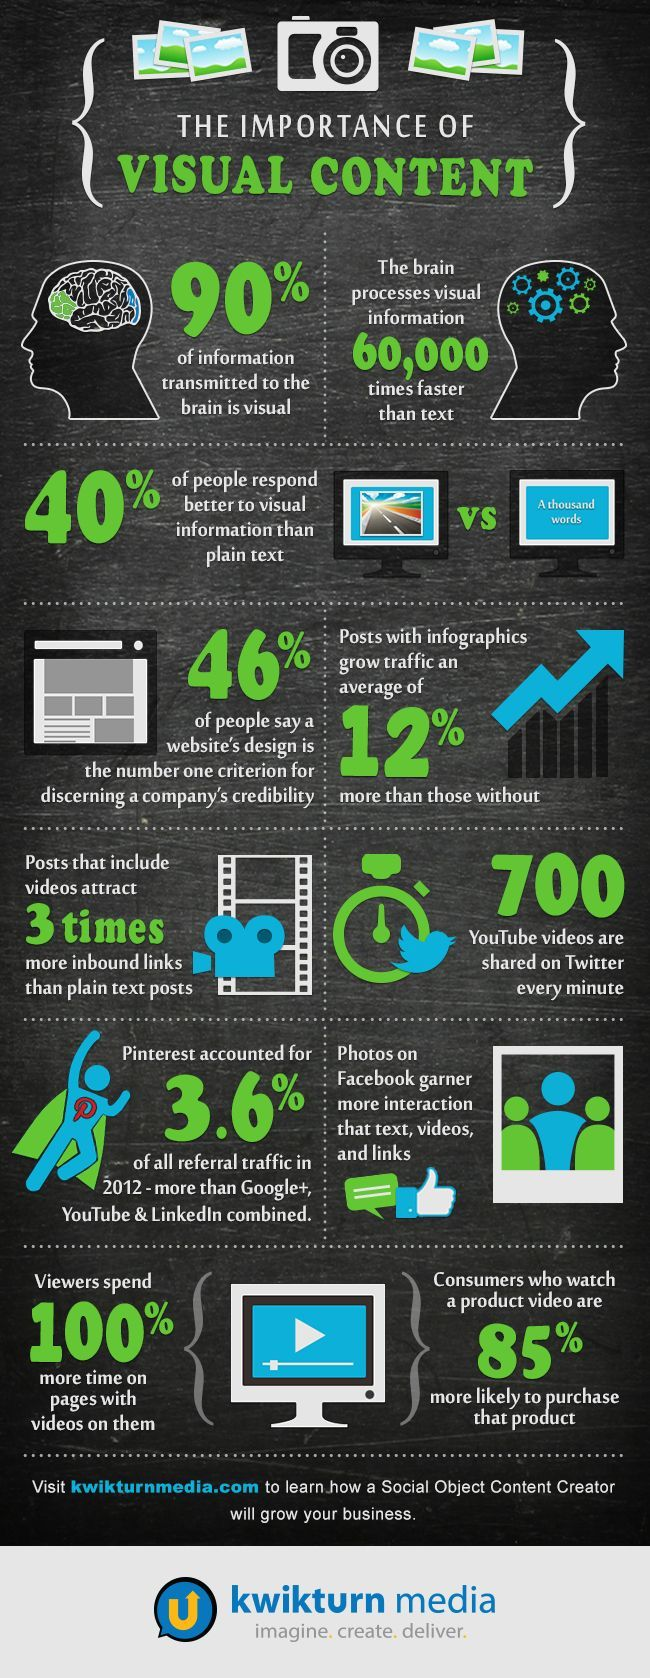 10 Reasons Why You Must Use Visual Content as Part of Your Marketing Strategy